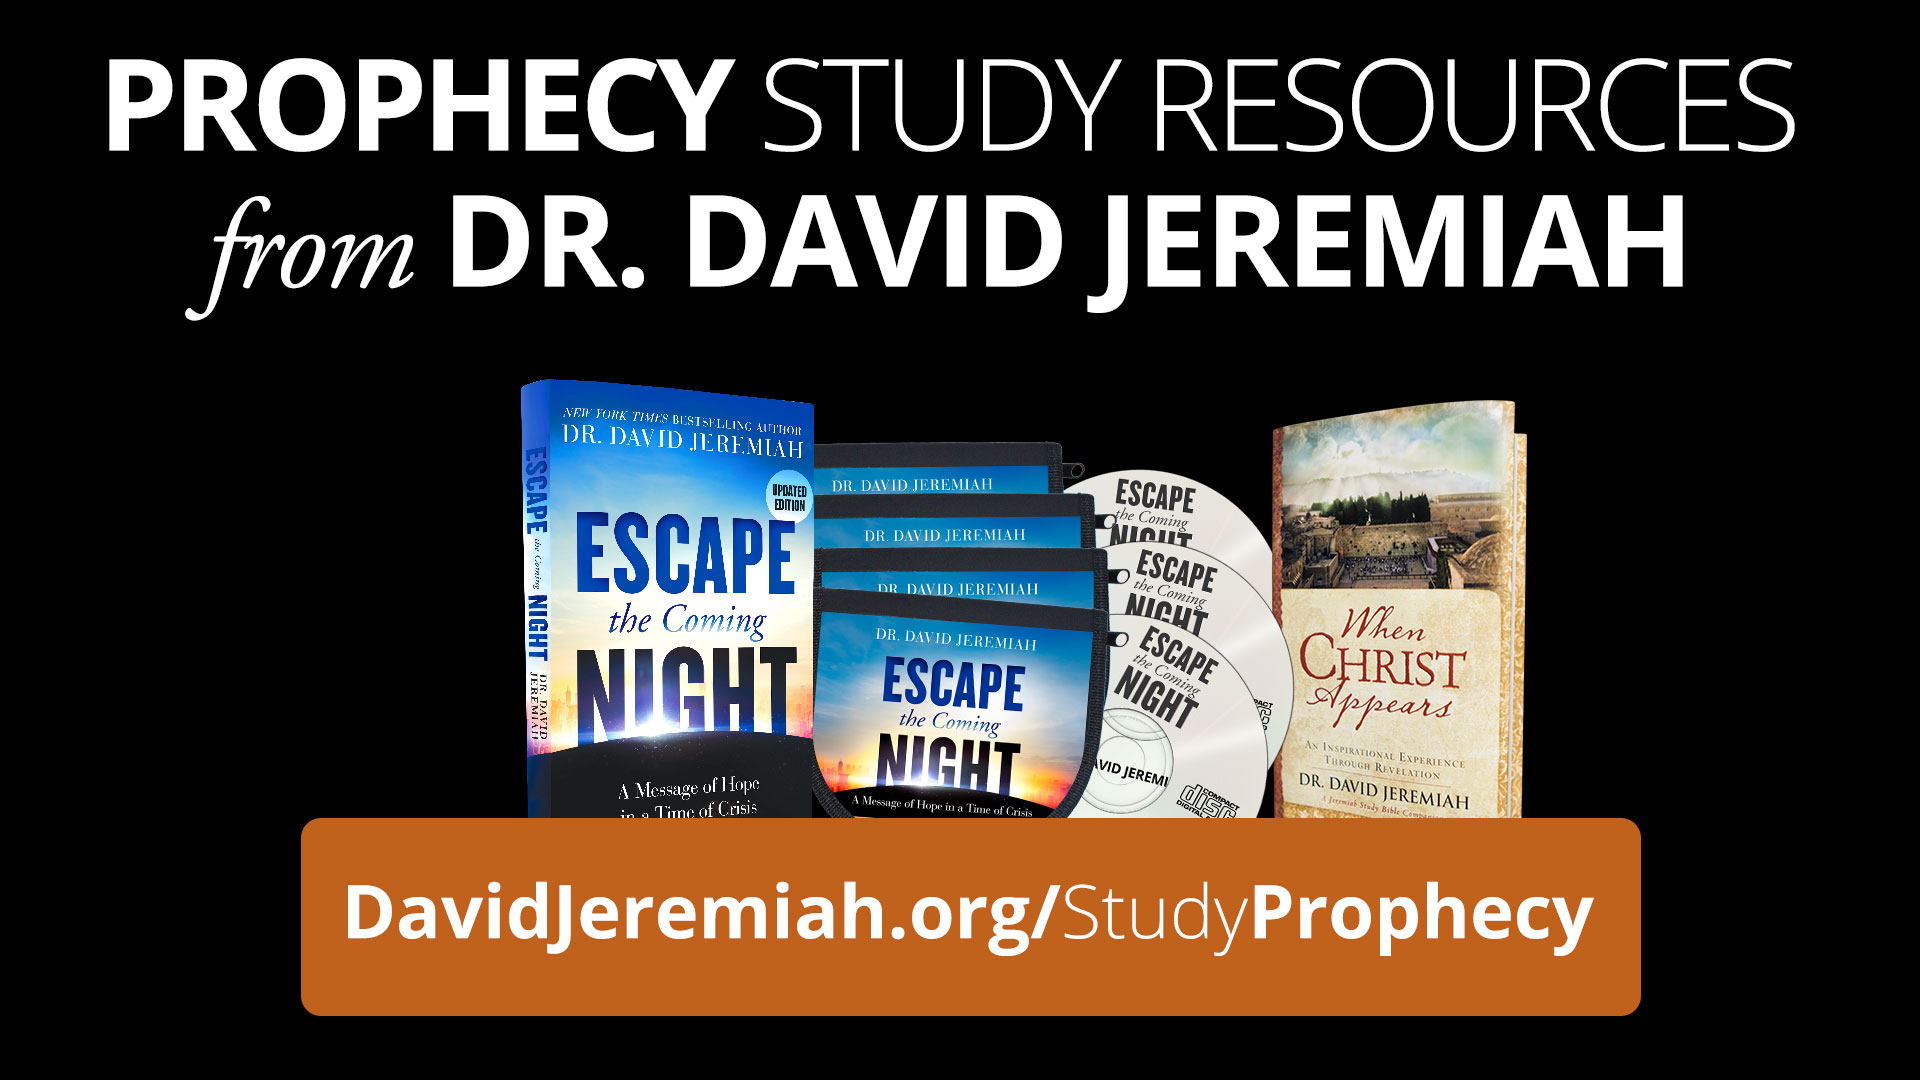 Prophecy Study Resources from Dr. David Jeremiah